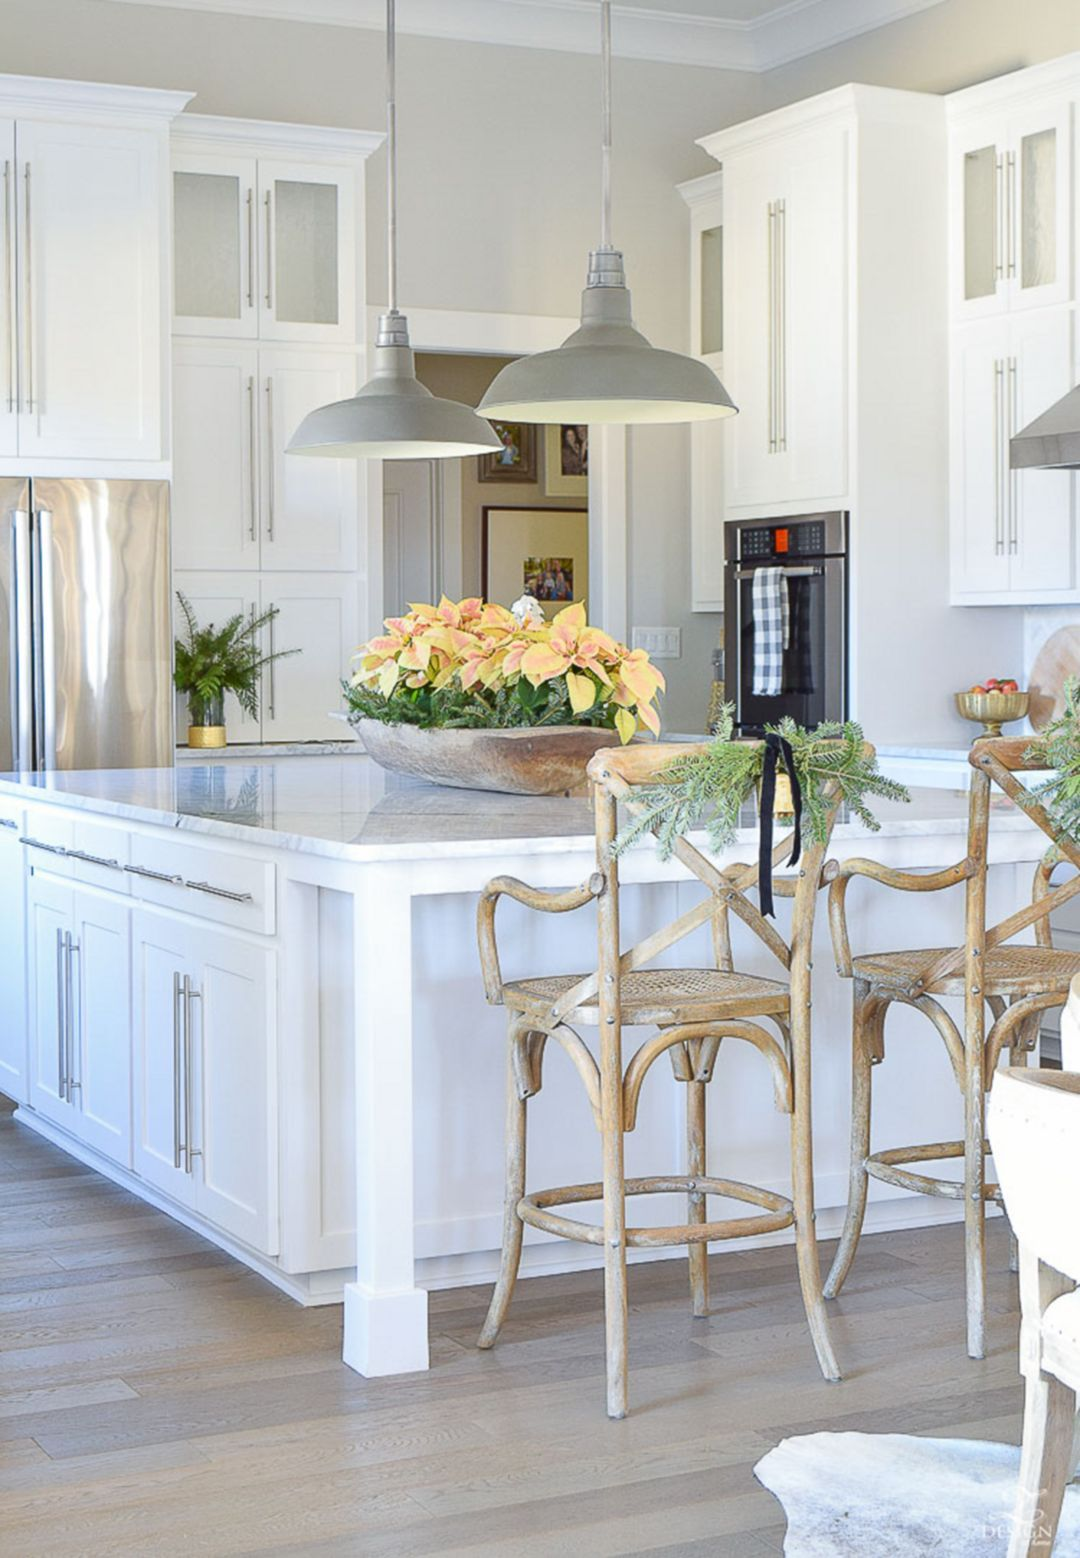 33 most popular kitchen cabinets color paint ideas trend 2019 teracee painted kitchen on kitchen cabinet color ideas id=86422